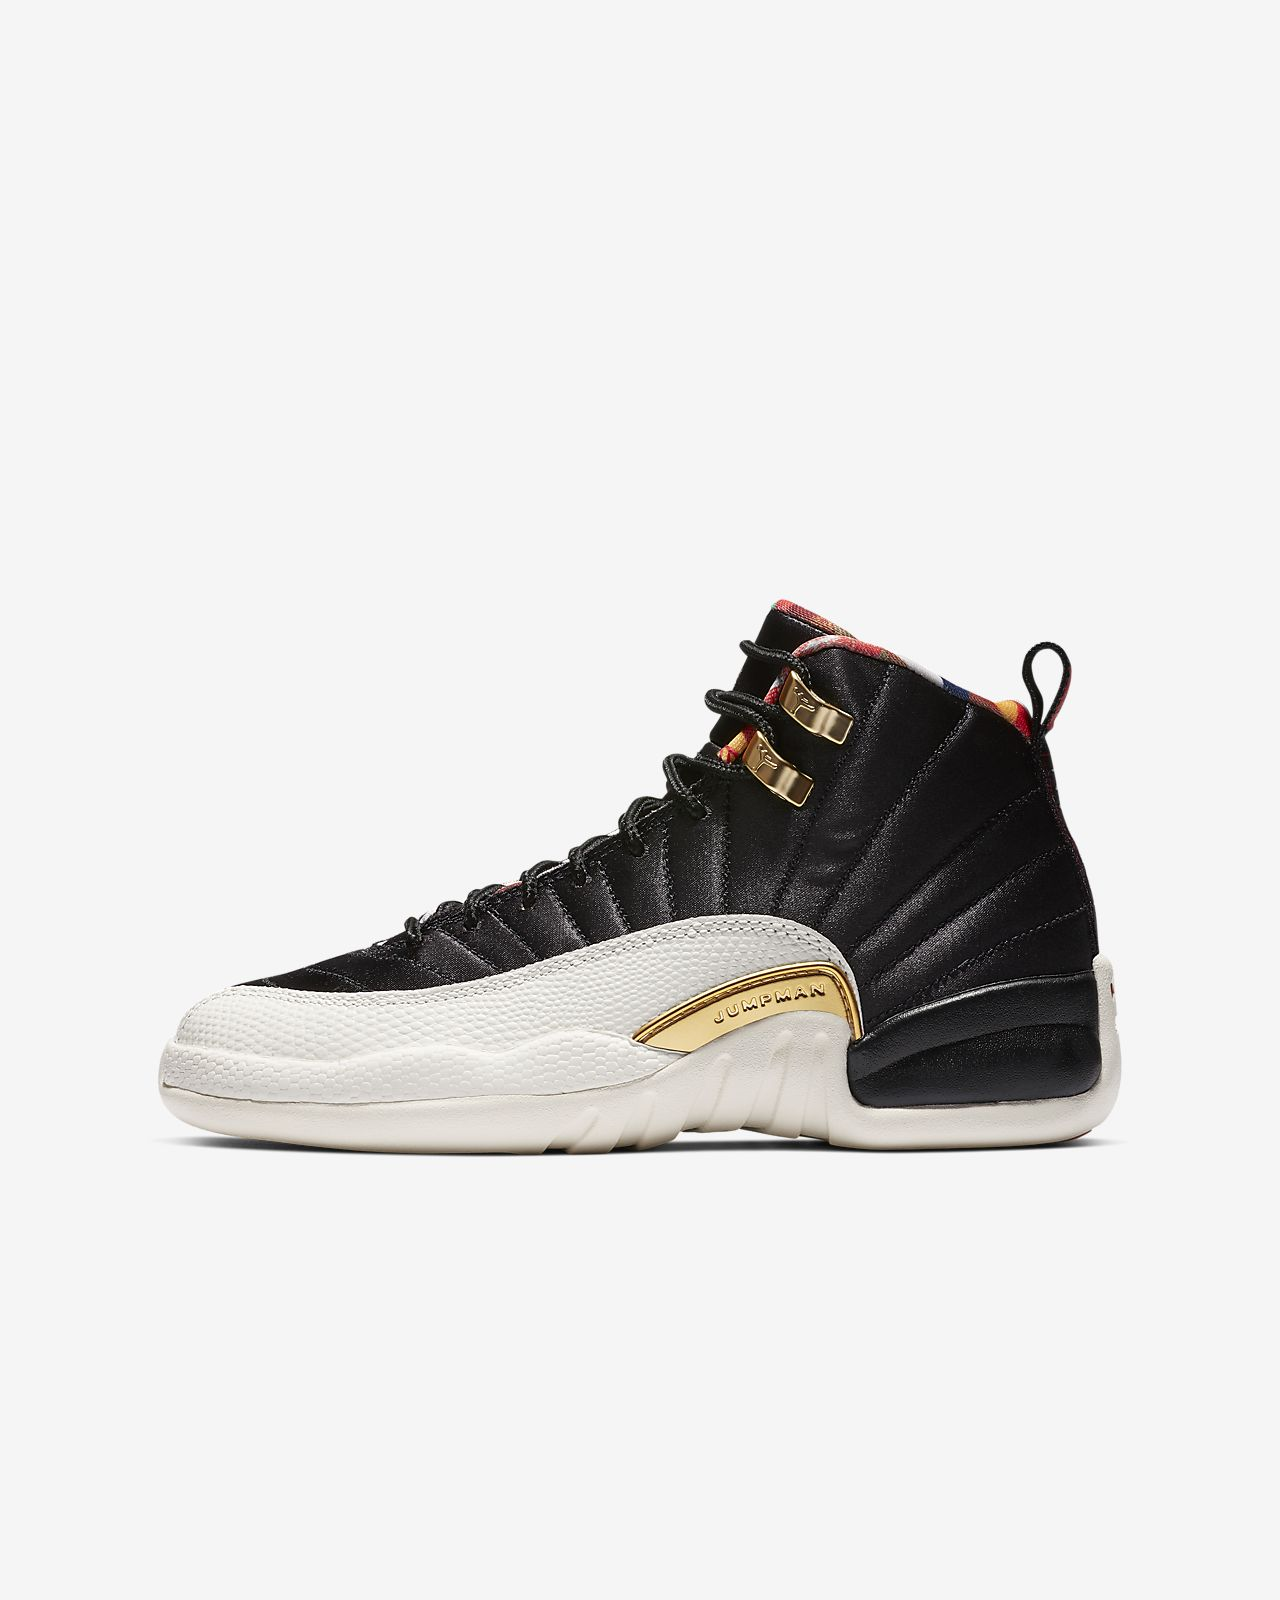 5a40372b695 Air Jordan 12 Retro CNY Big Kids  Shoe. Nike.com